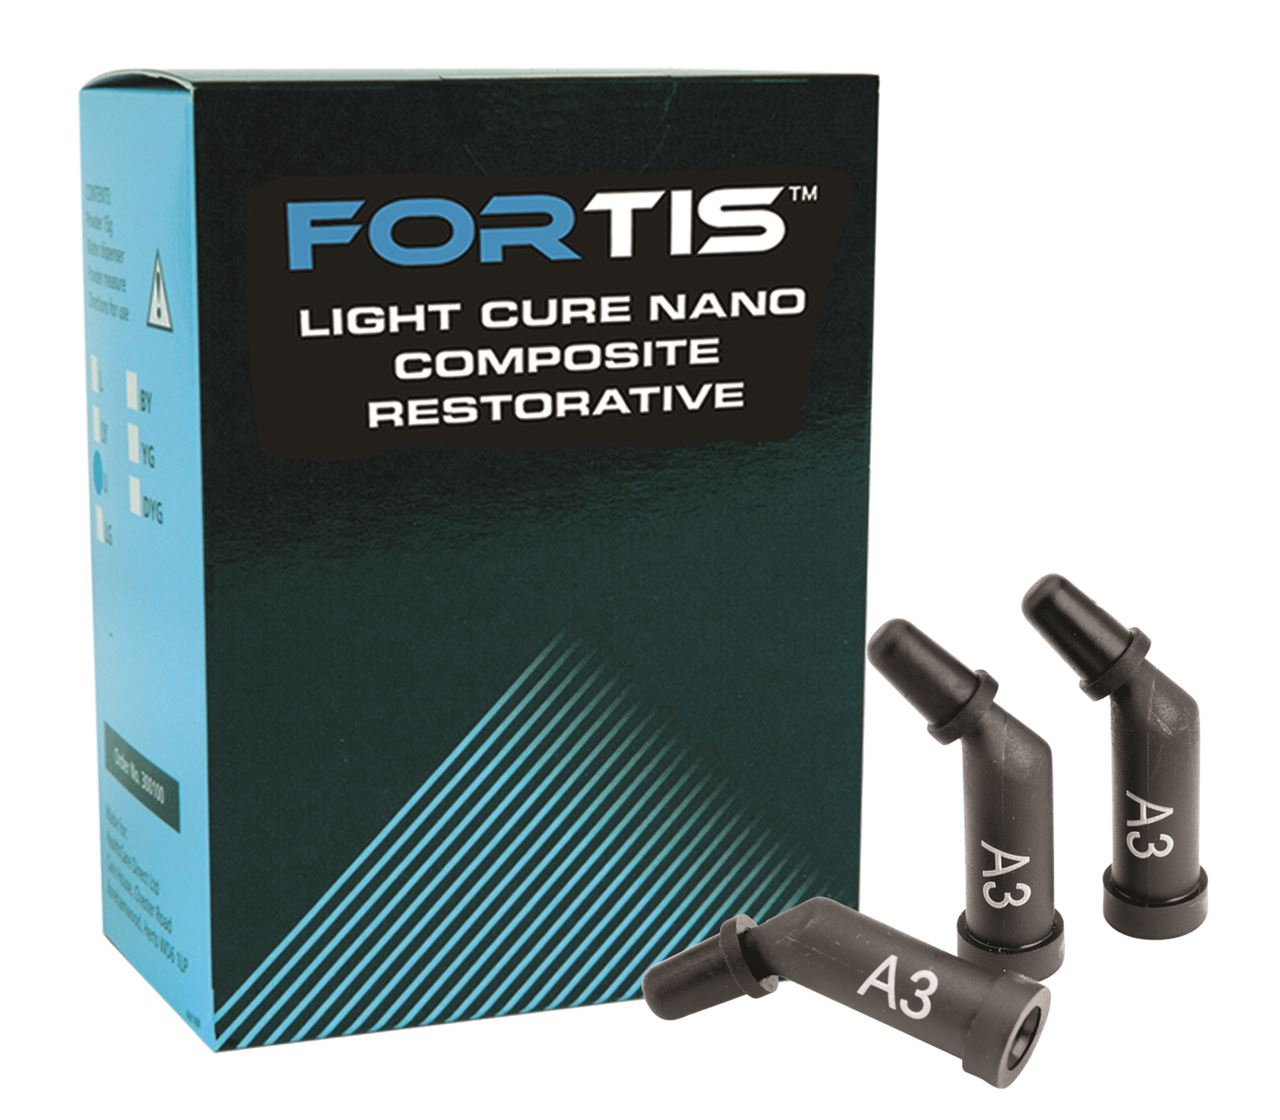 Picture of Fortis Nano Composite Capsules  -  Shade C2  (20 x 0.25g)